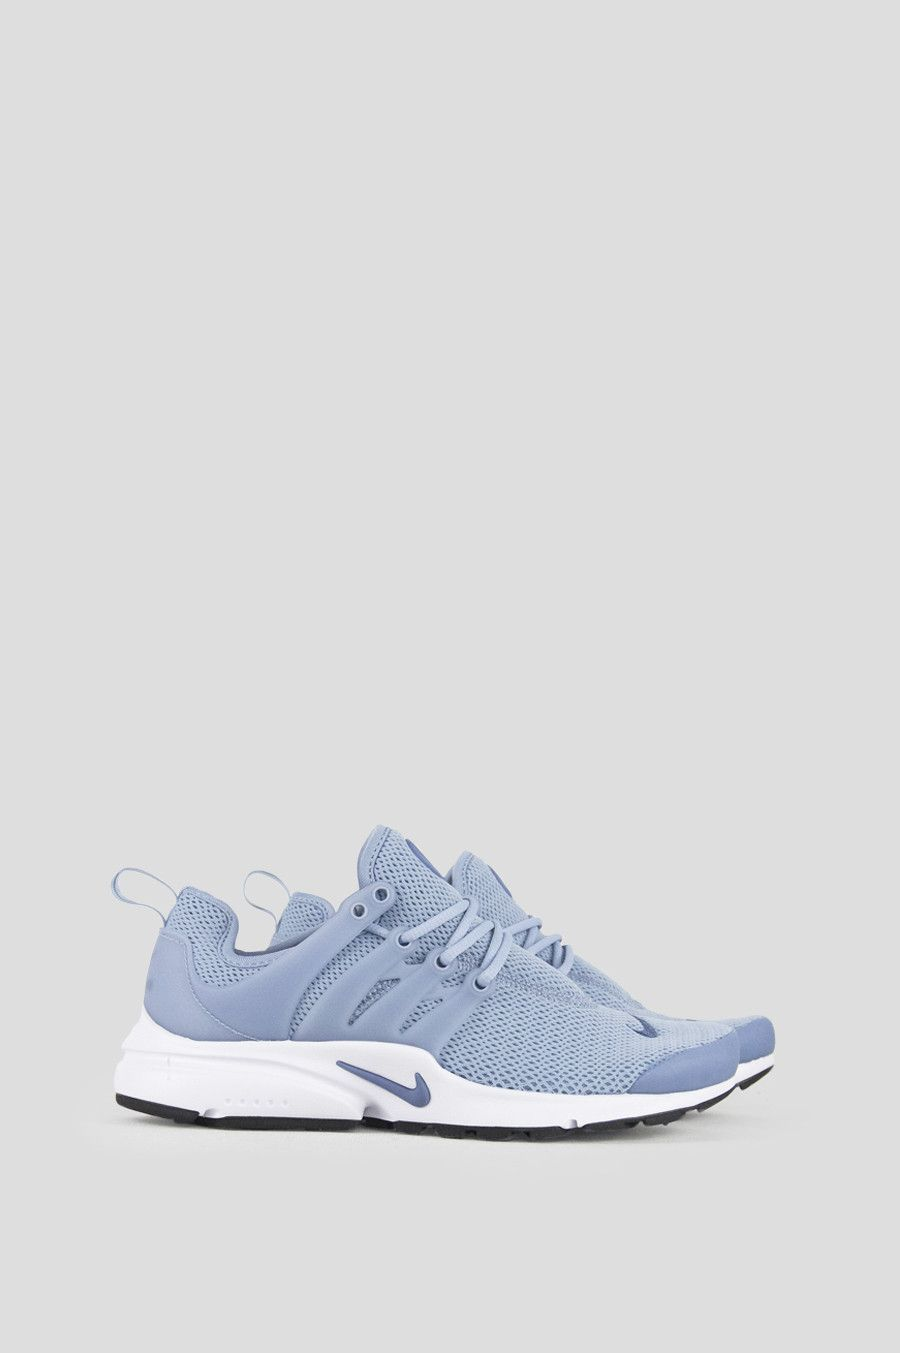 47cb1ab40b9b The Nike Air Presto Women s Shoe is inspired by the comfort and minimalism  of a classic T-shirt for lightweight everyday comfort. - Product Code   878068-400 ...